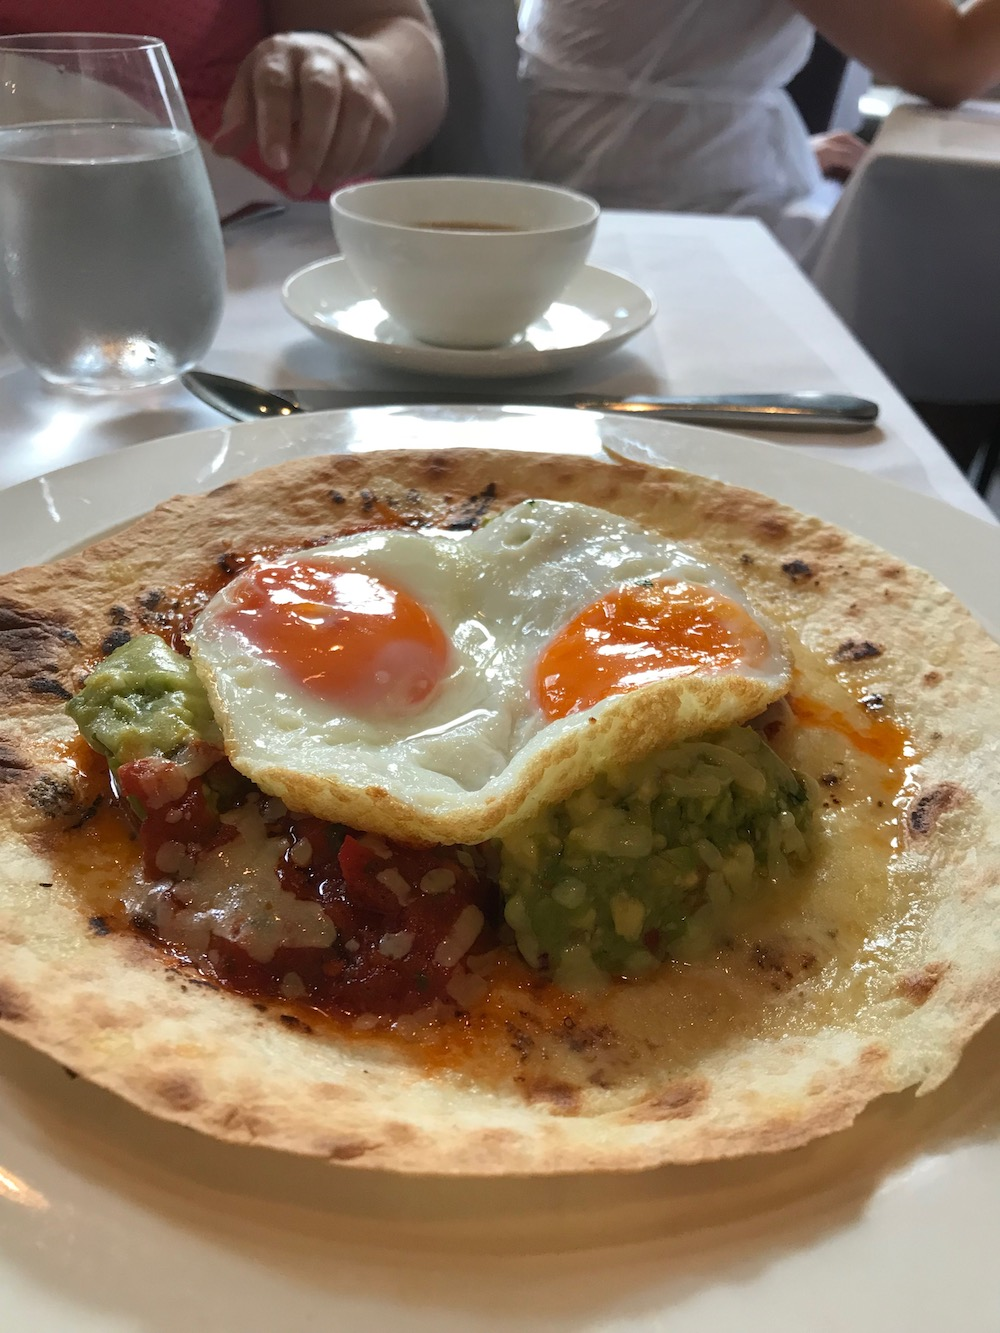 Ed's brunch of Huevos California and tea at Christopher's